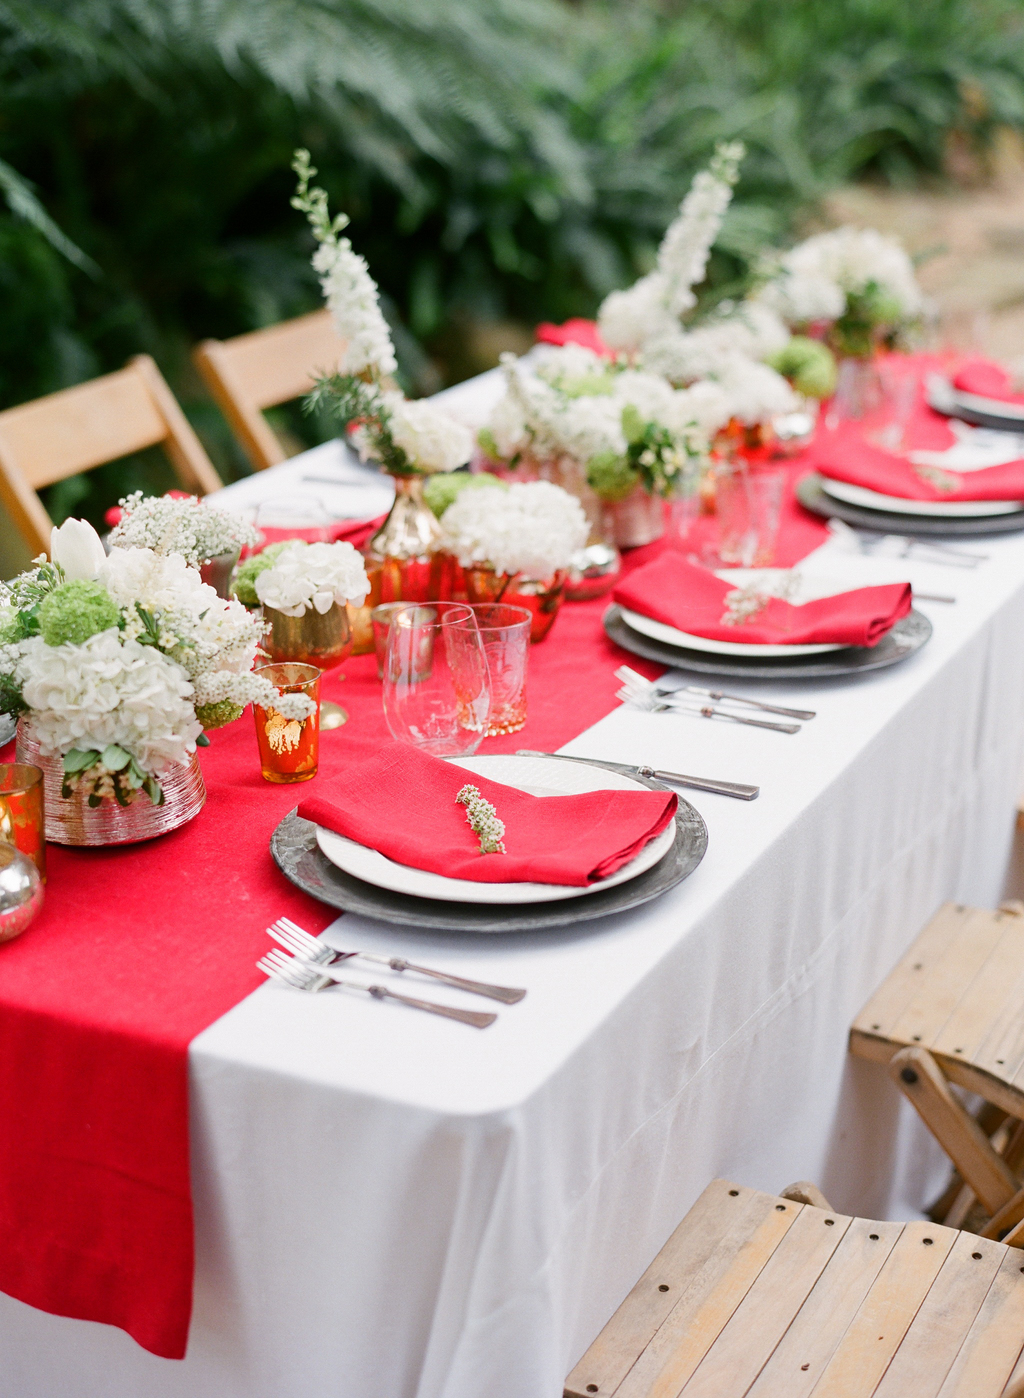 Styled-wedding-santa-barbara-chic-beaux-arts-photographie-italian-bohemian-wedding-venue-table-setting-red-white-flowers-antique-glass-063.full